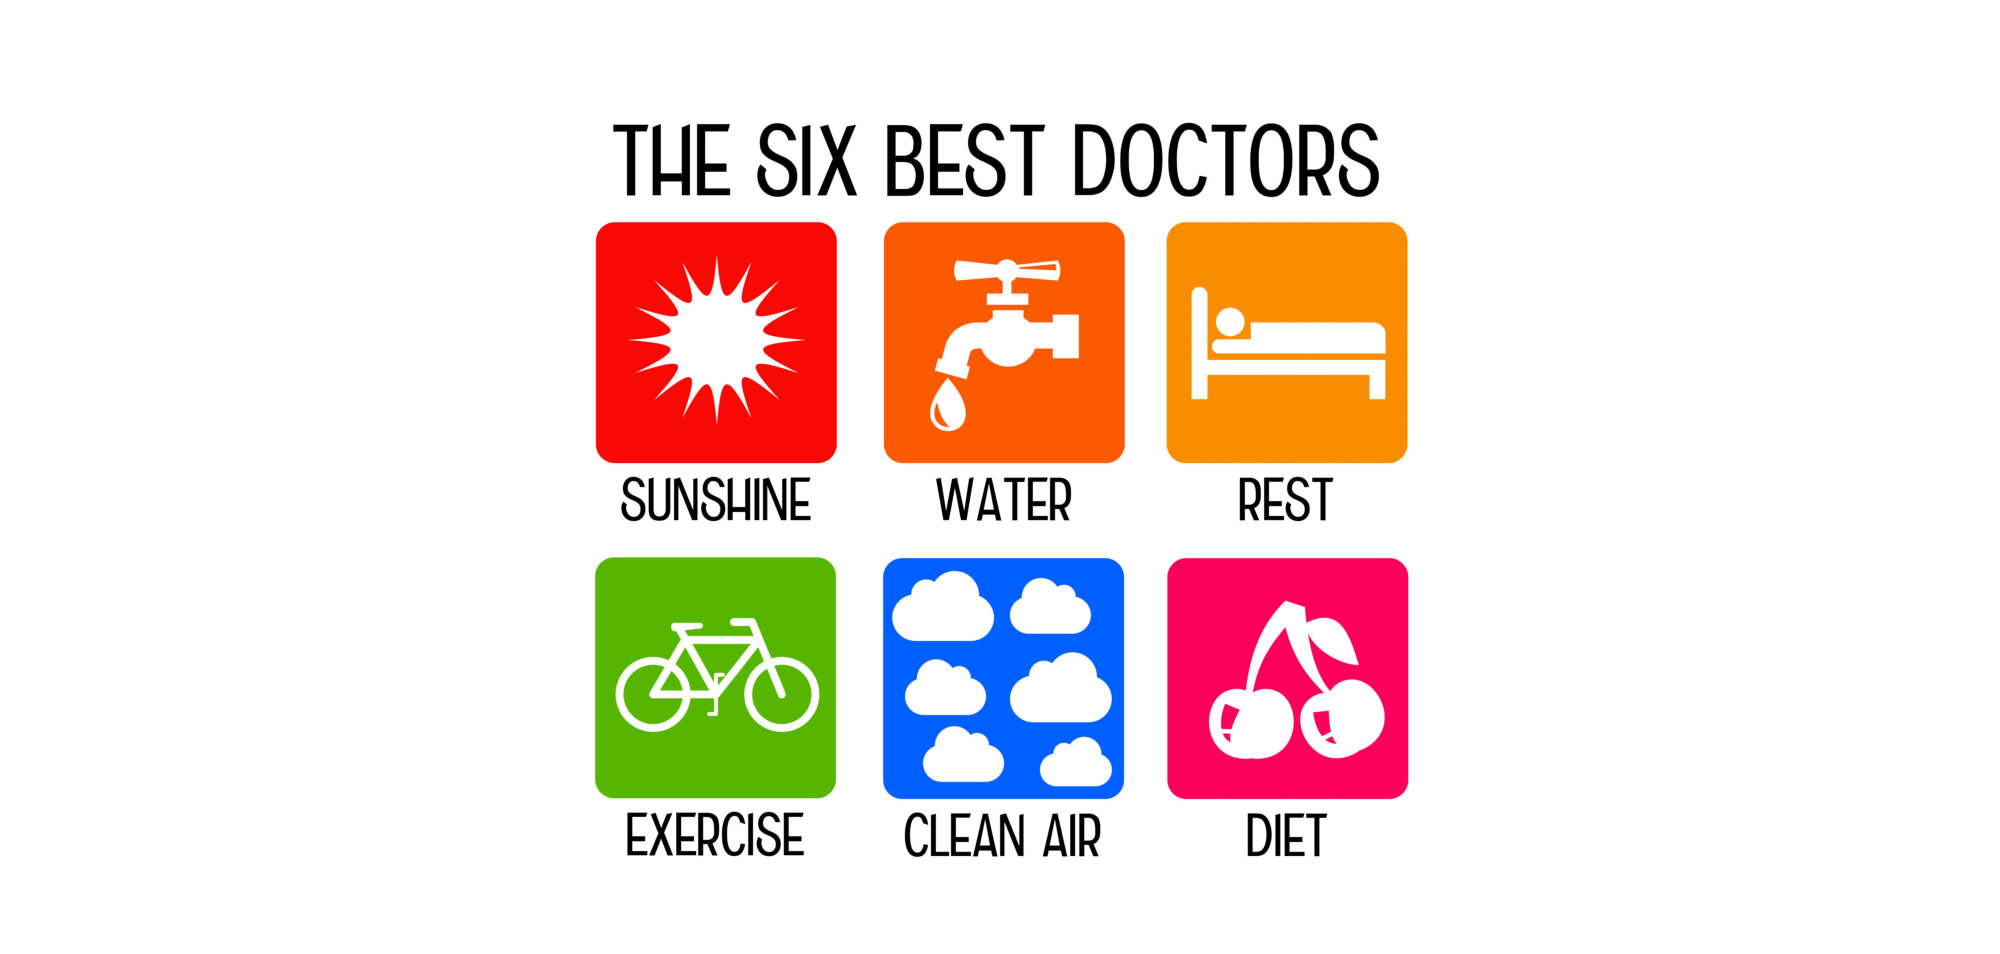 Healthy living by following the orders of the six best doctors